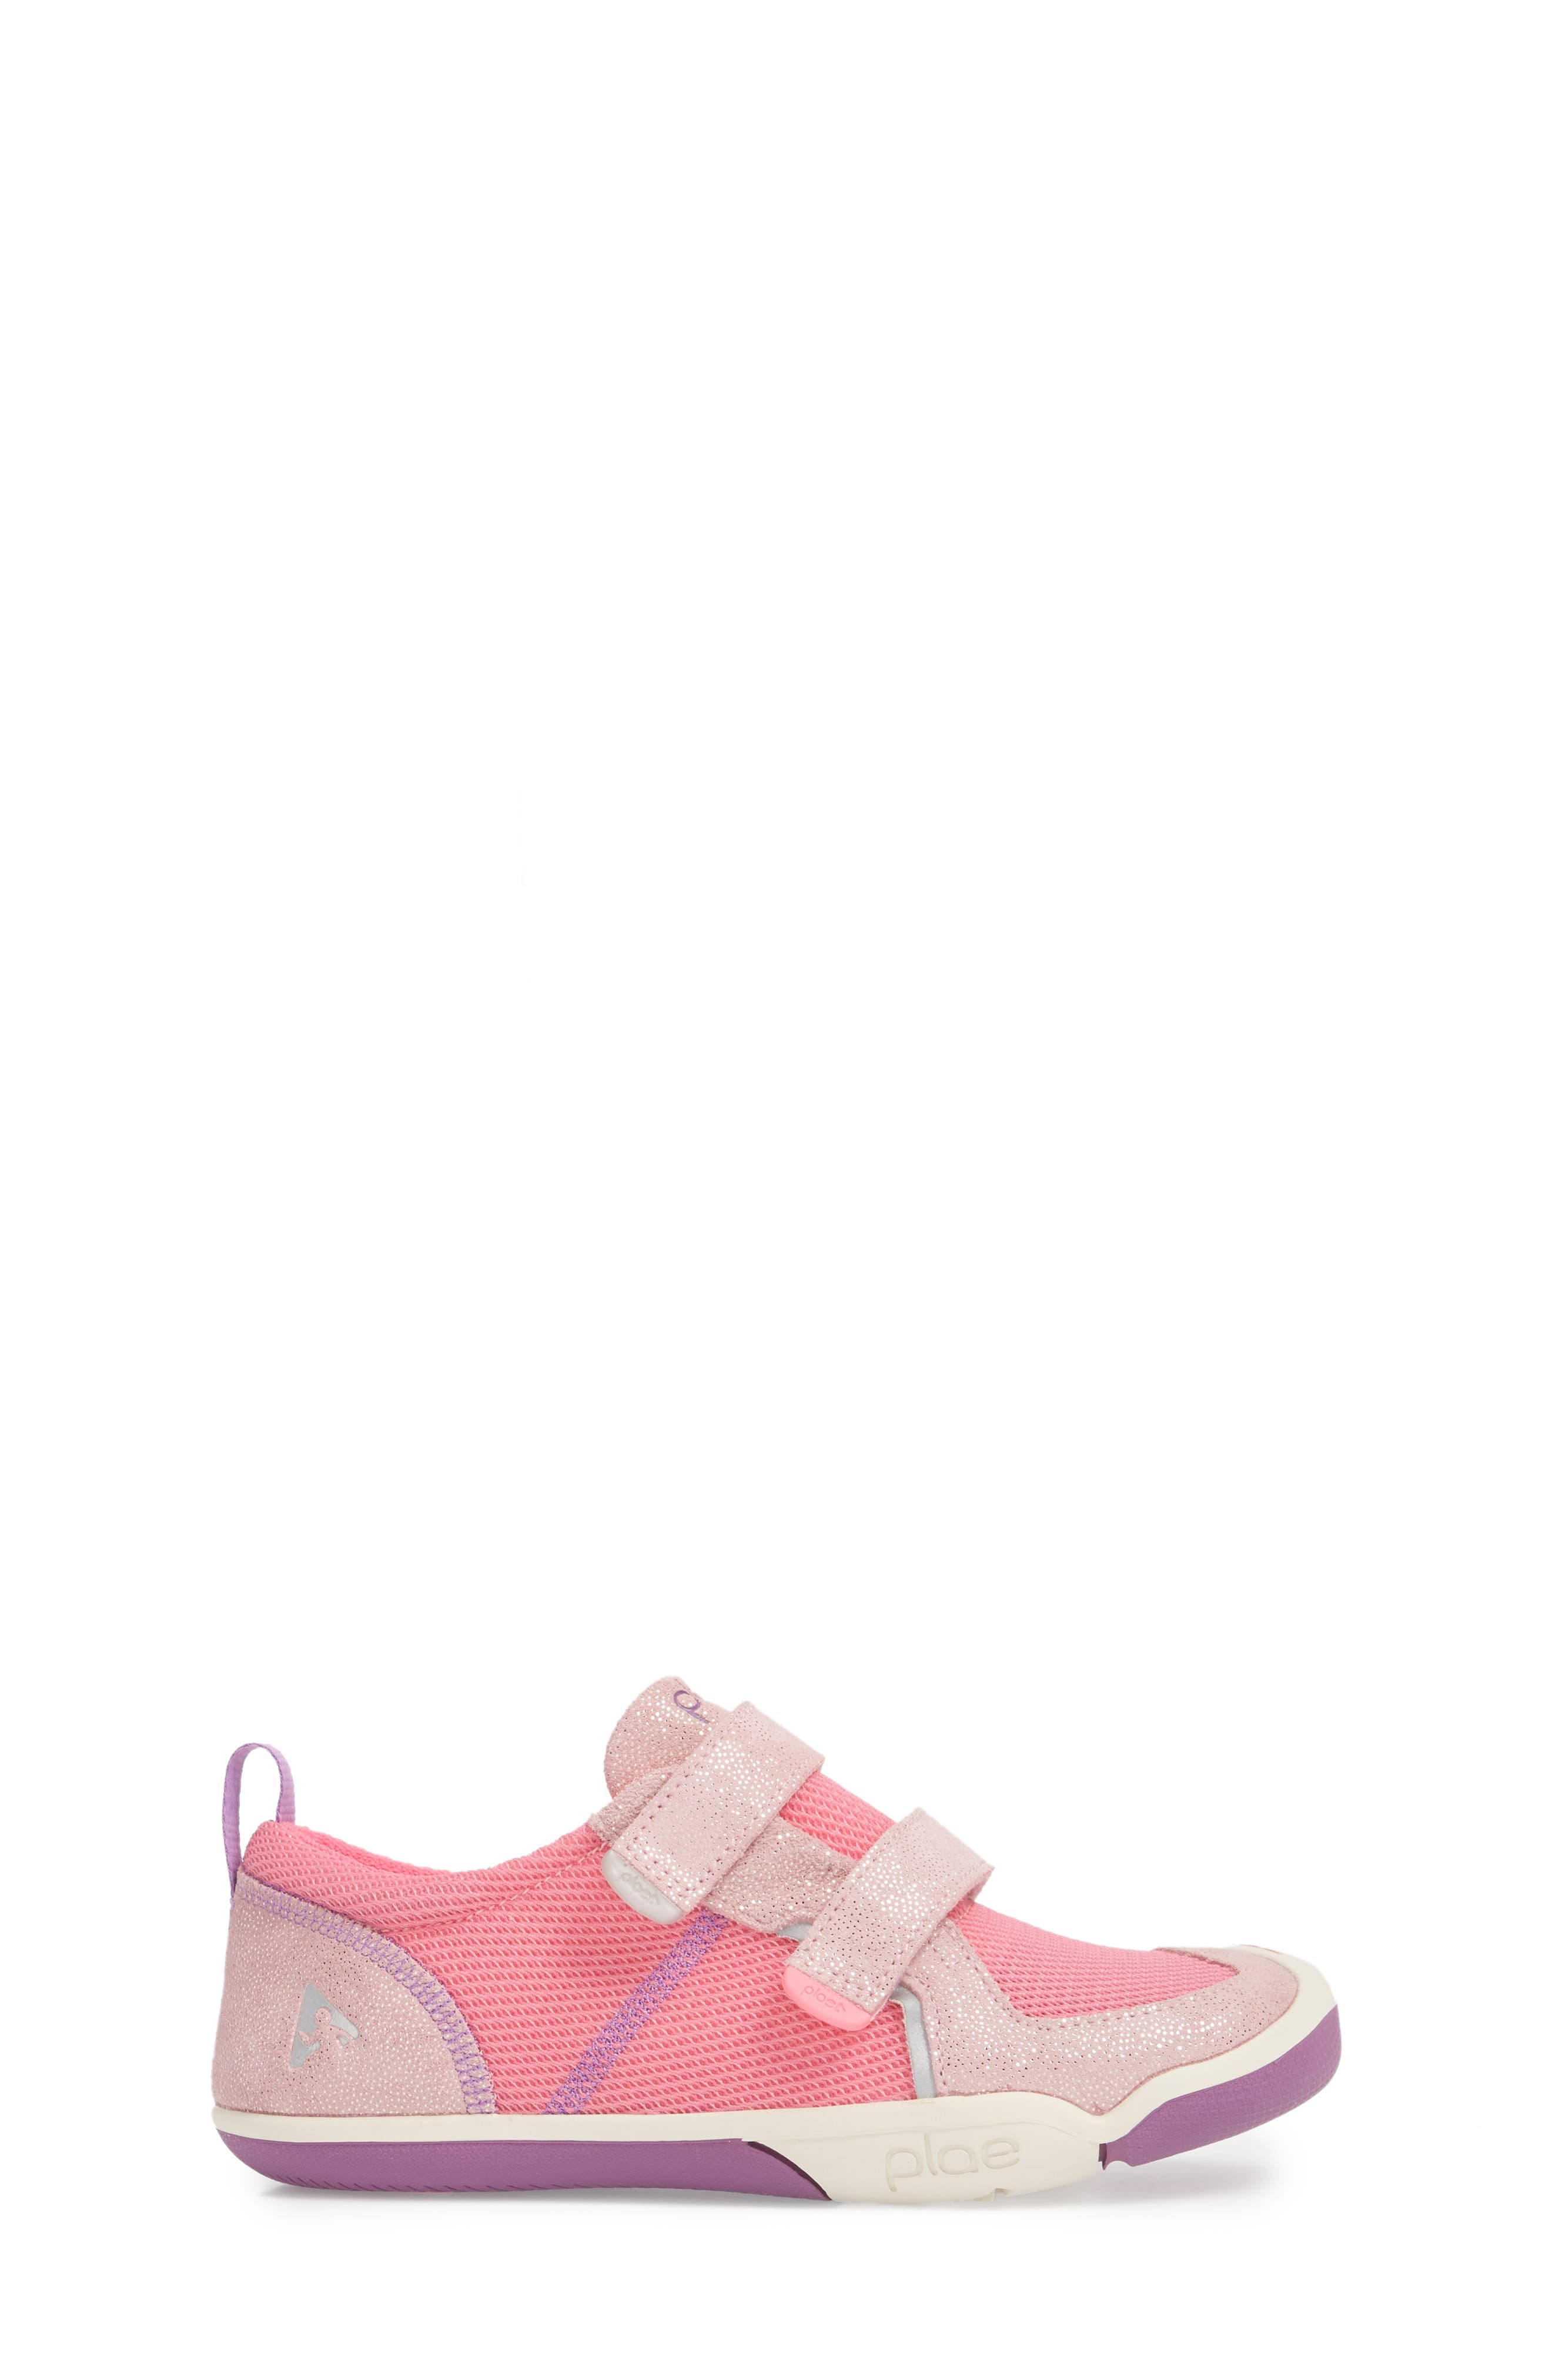 PLAE,                             'Ty' Customizable Sneaker,                             Alternate thumbnail 3, color,                             PINK/ PINK/ DEWBERRY